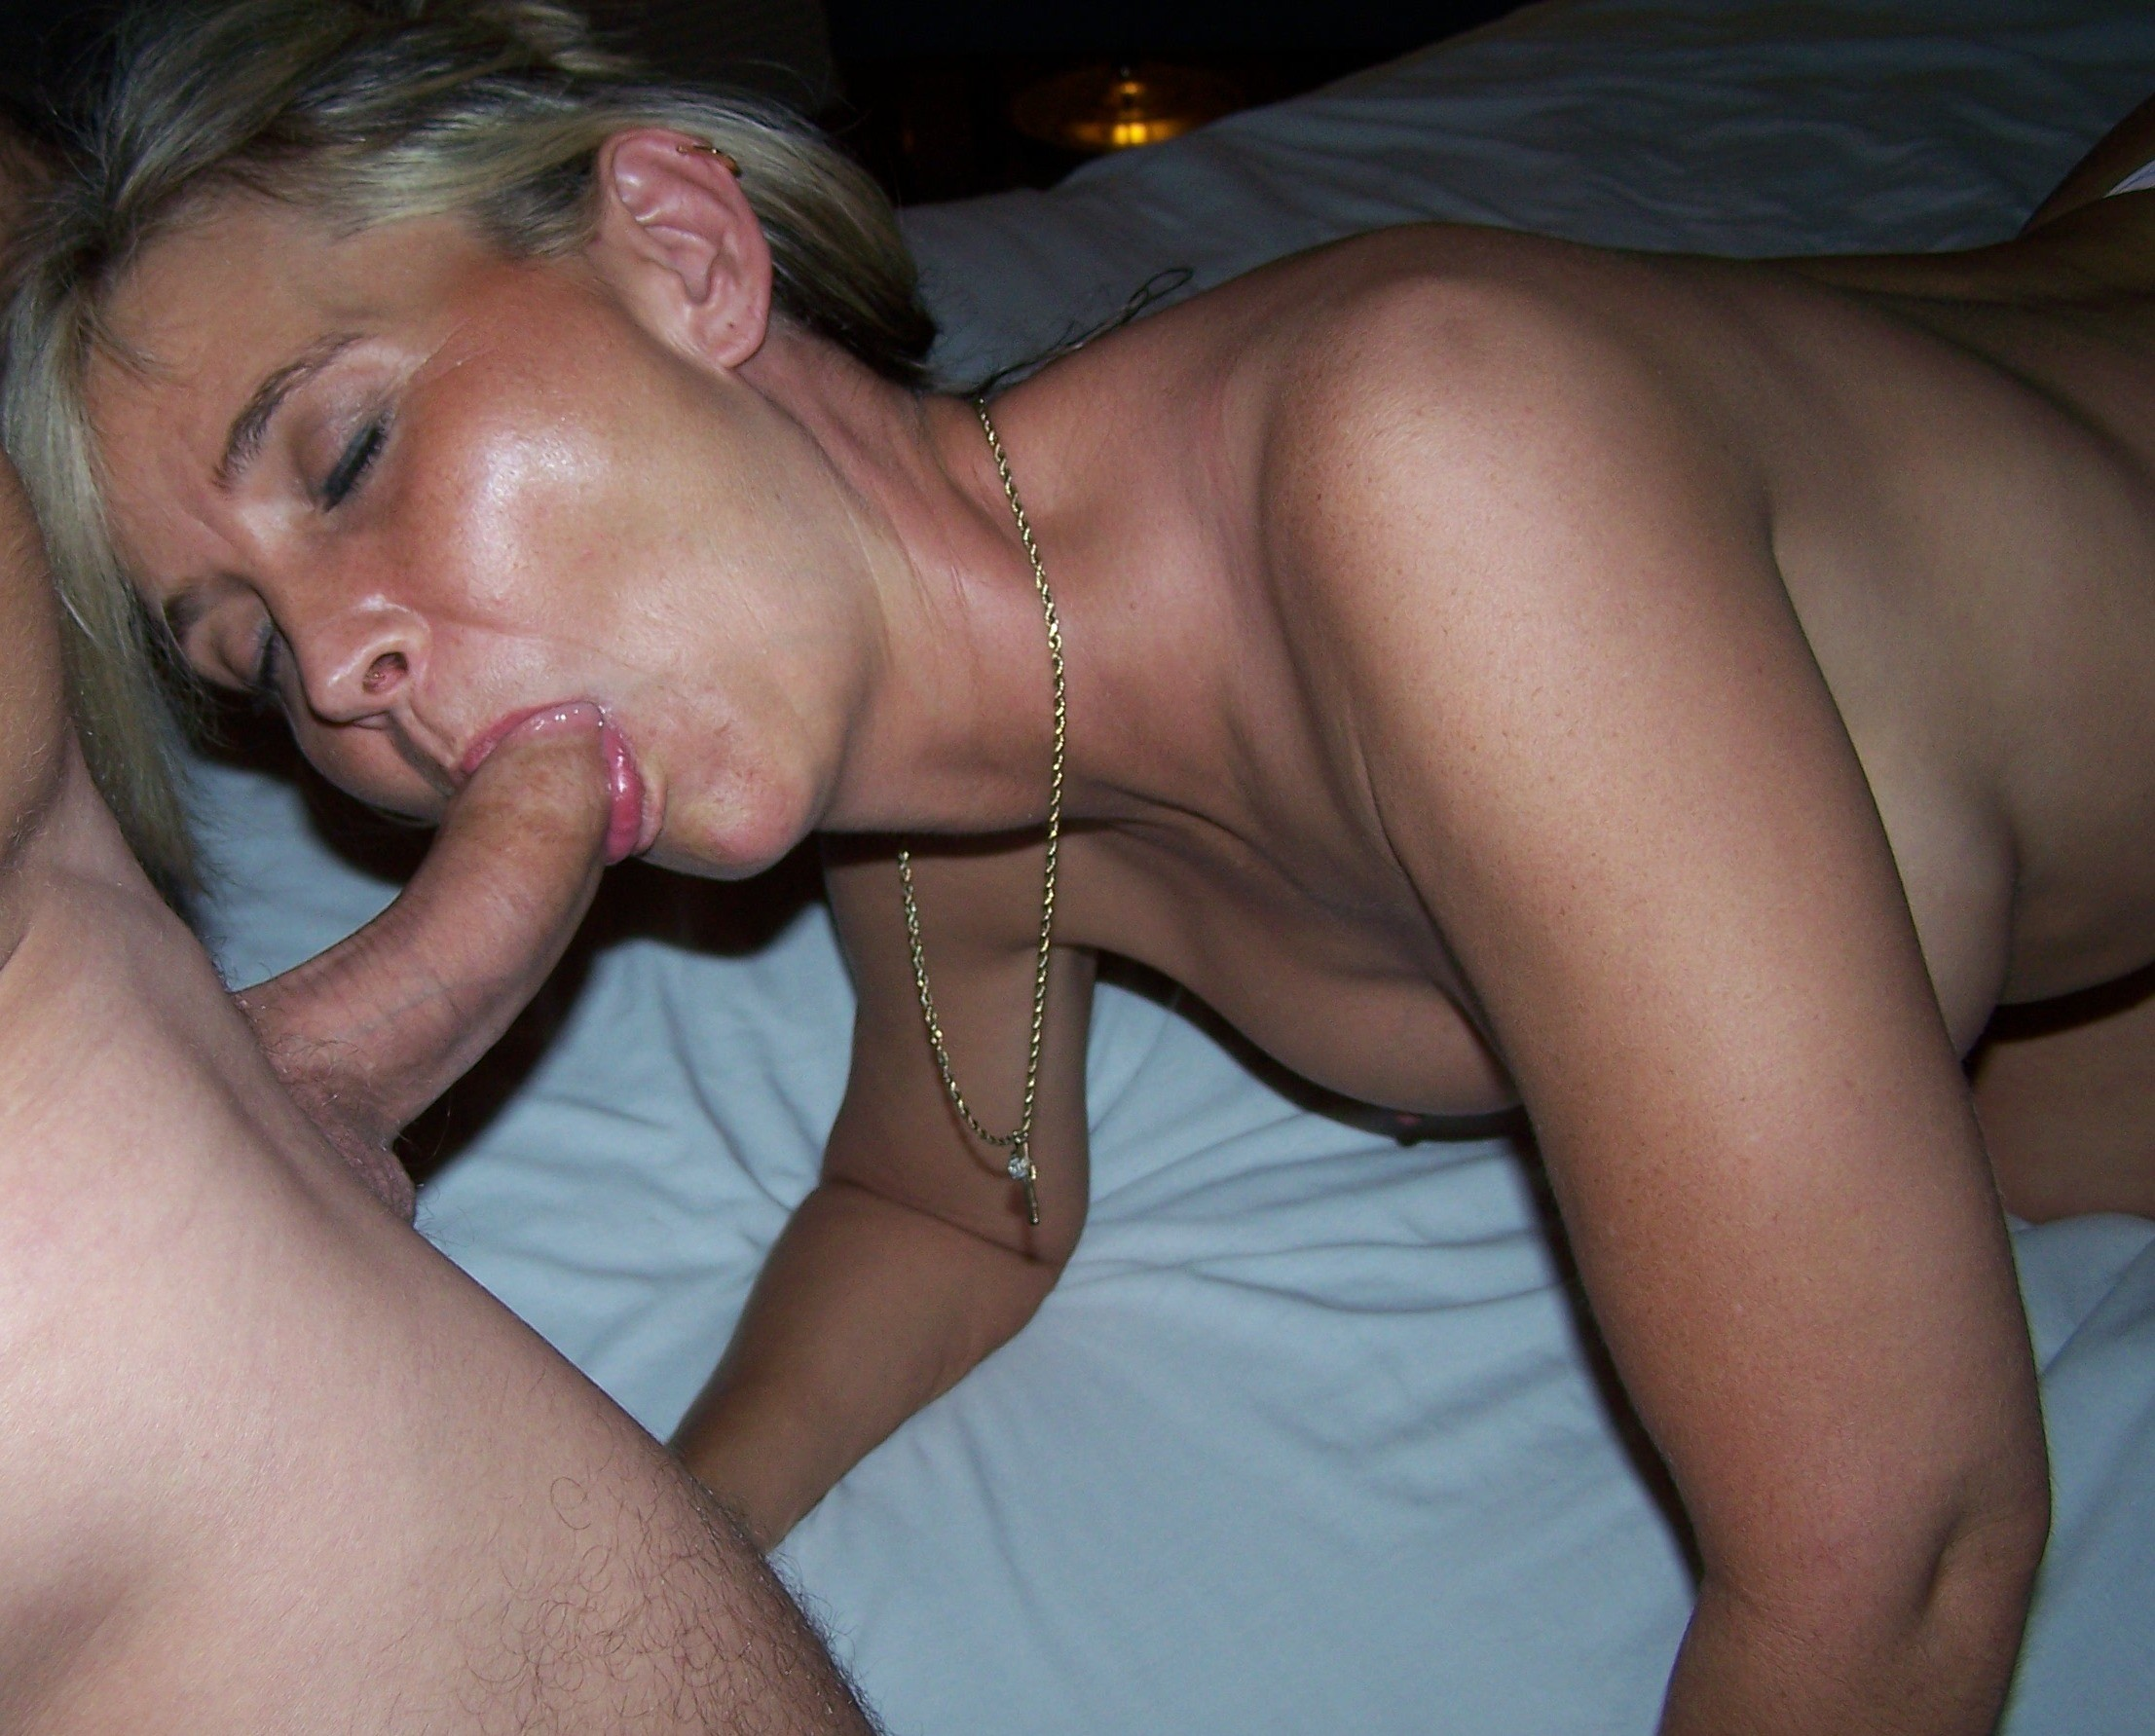 amateur-milf-blowjob-movie-foot-job-picture-search